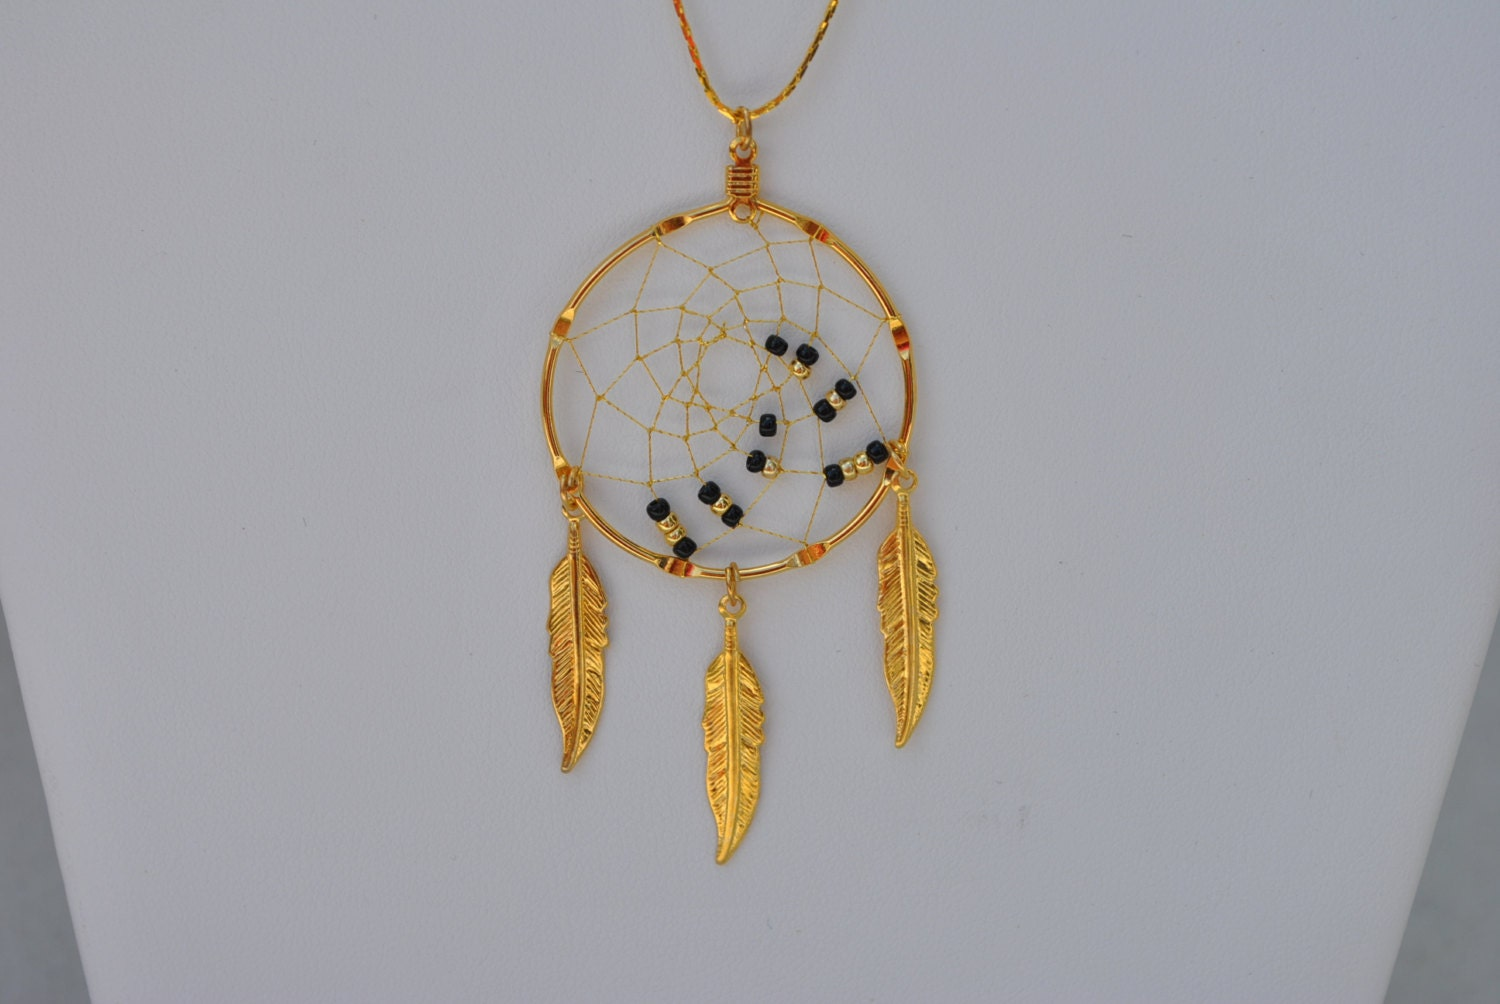 Handmade gold dreamcatcher necklace with black and gold beads for Dreamcatcher beads meaning